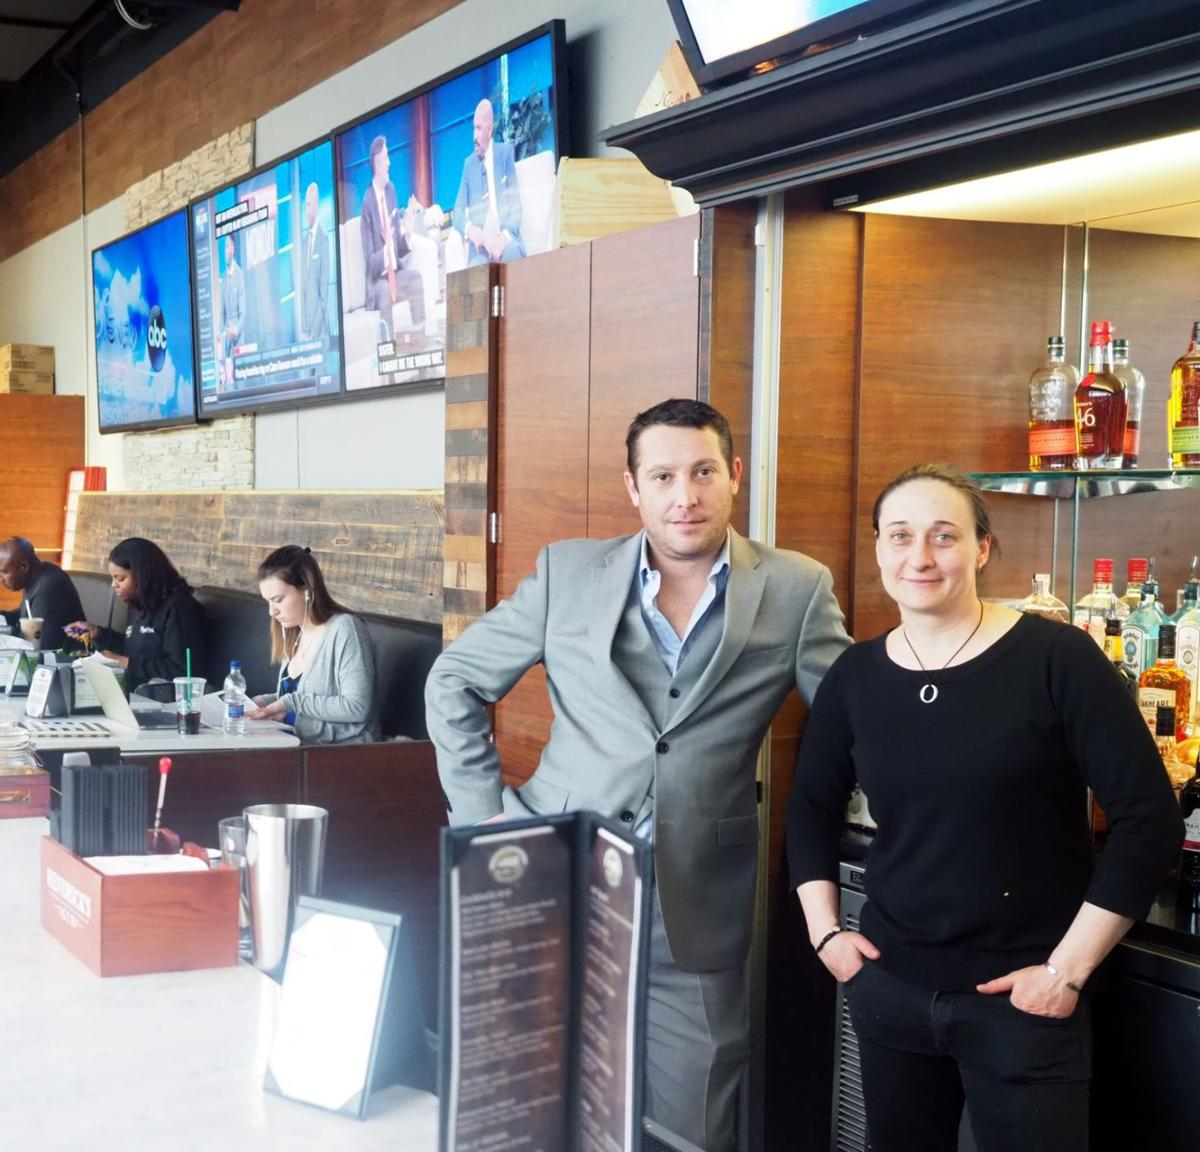 Say hello to new bar bin 37 at shoprite in hanover township bin 37 general manager jason mongiovi and bartender julie yarotsky preside over the recently opened bar area at shoprite of greater morristown falaconquin